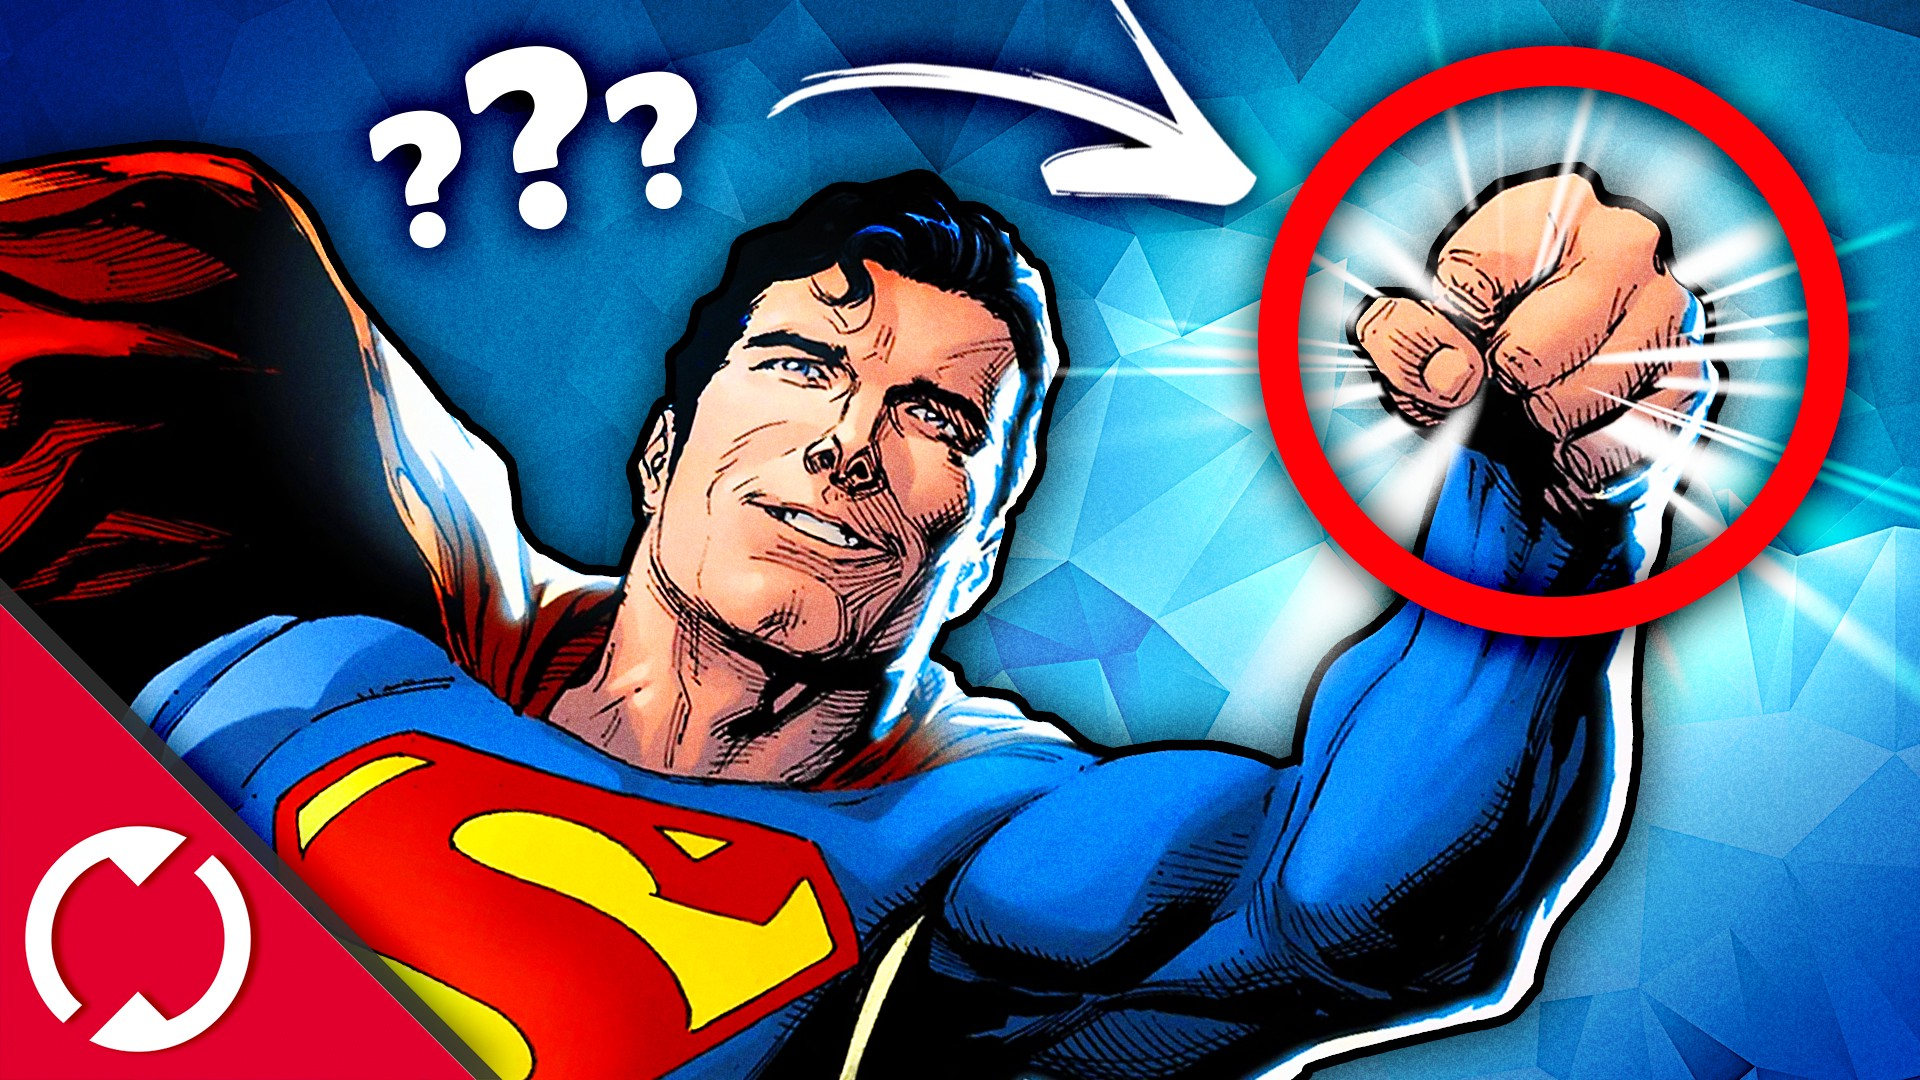 SUPERHERO SCIENCE: Could Superman REALLY Crush Coal Into a Diamond?